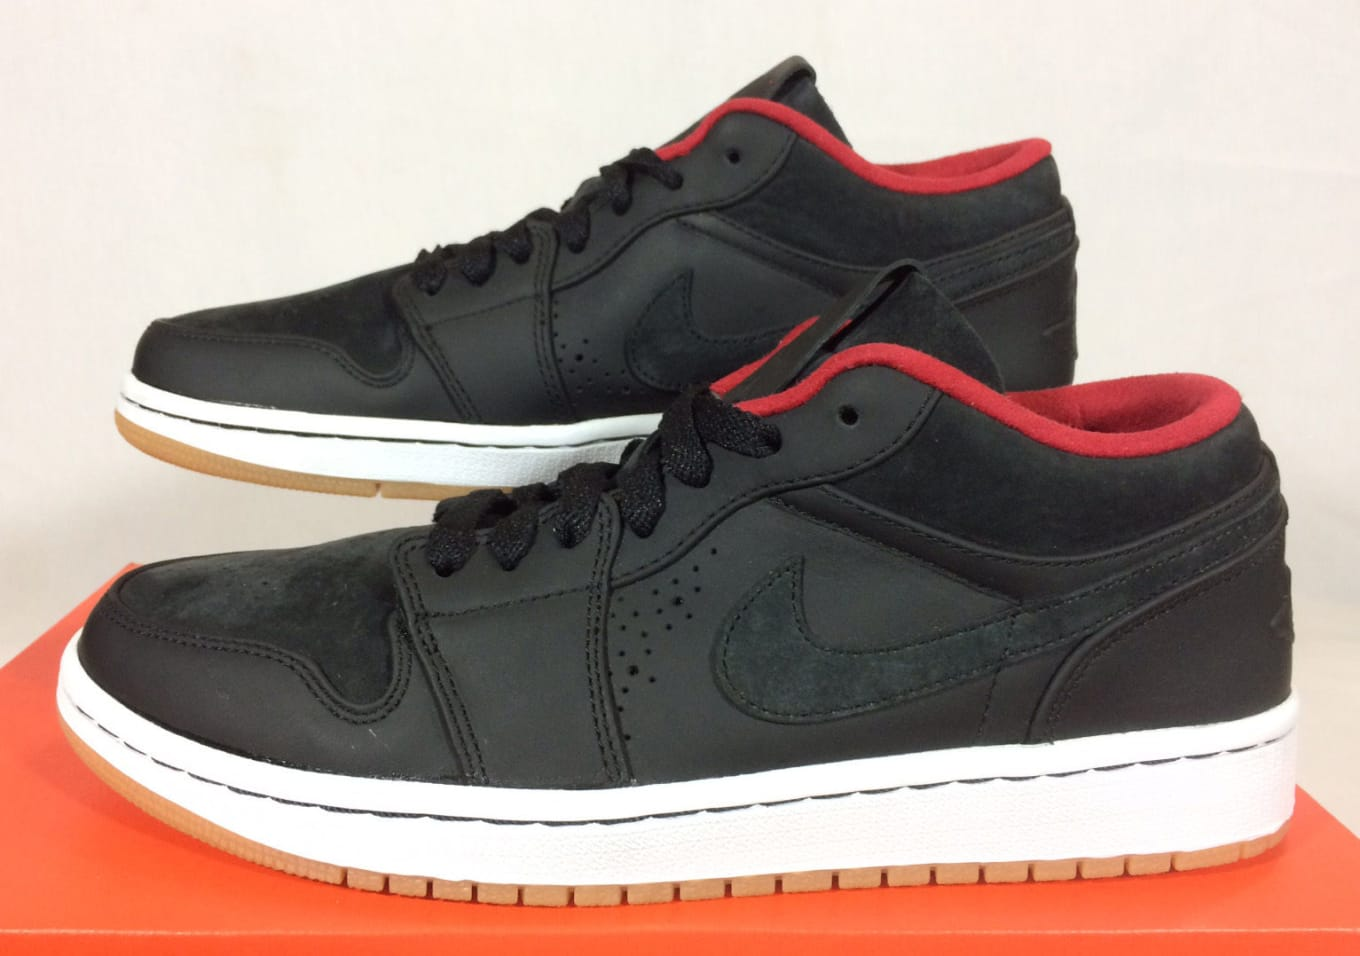 wholesale dealer 60323 cad03 20 Air Jordan Samples Ebay | Sole Collector